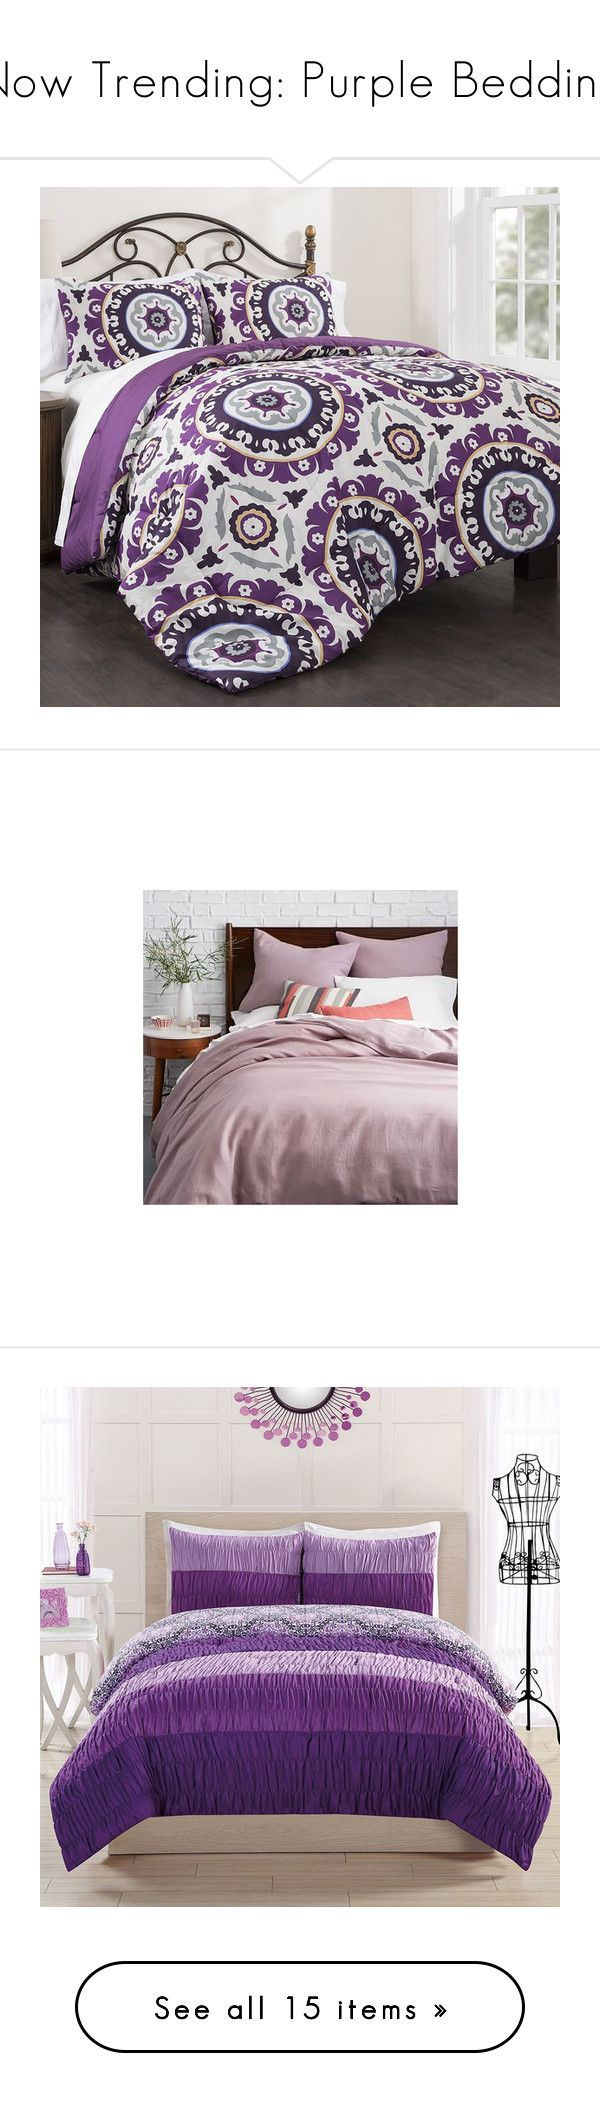 """Now Trending: Purple Bedding"" by polyvore-editorial ❤ liked on Polyvore featuring NowTrending, homedecor, purplebedding, home, bed & bath, bedding, comforters, purple, lavender comforter and light purple comforter"